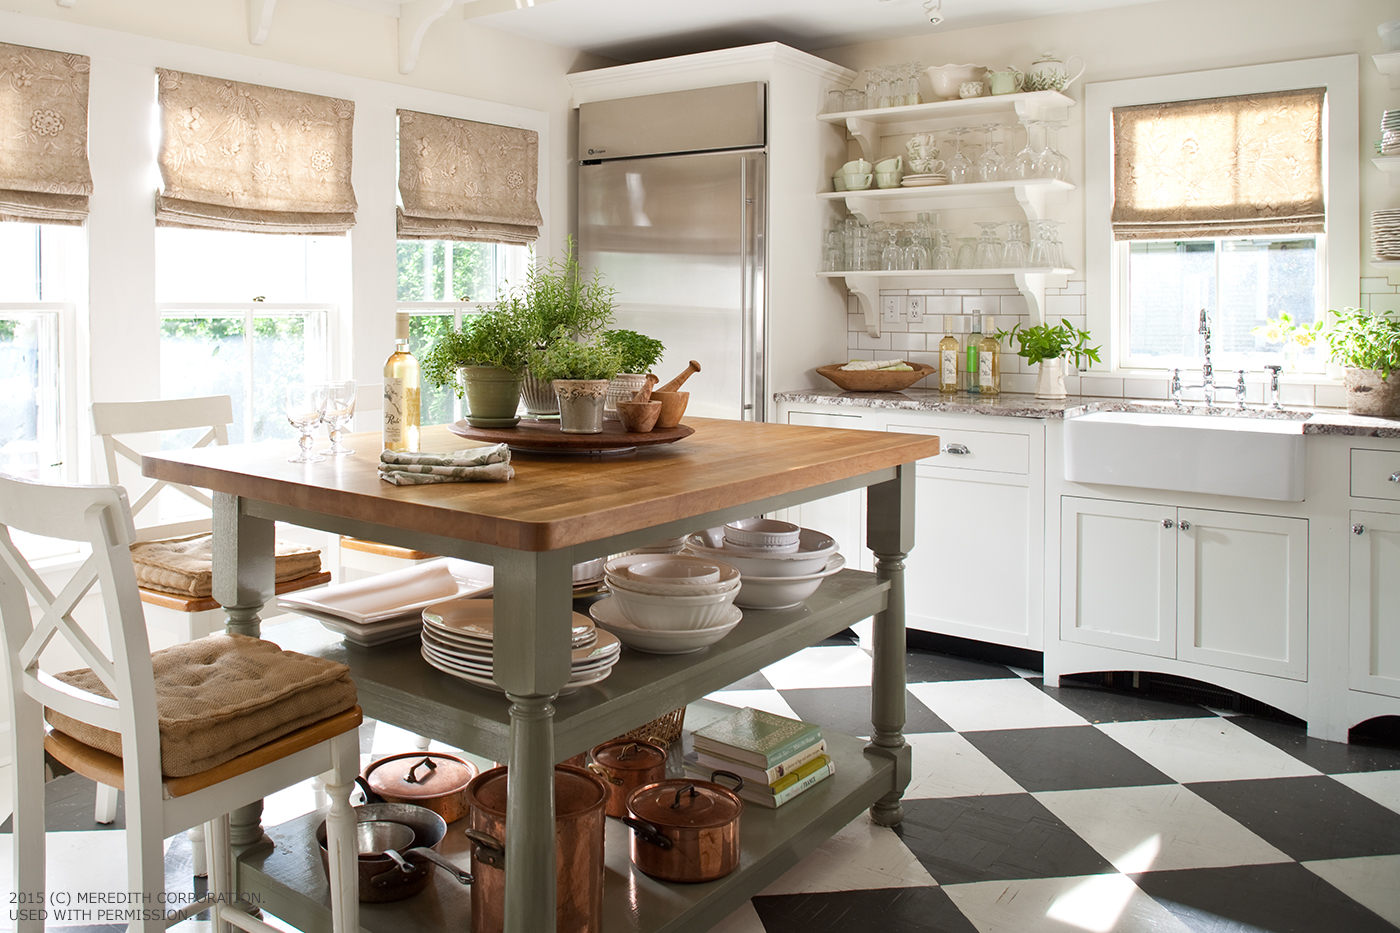 Stylish Kitchen Floor Ideas For Your Home Renovation - Better Homes And Gardens Real Estate Life